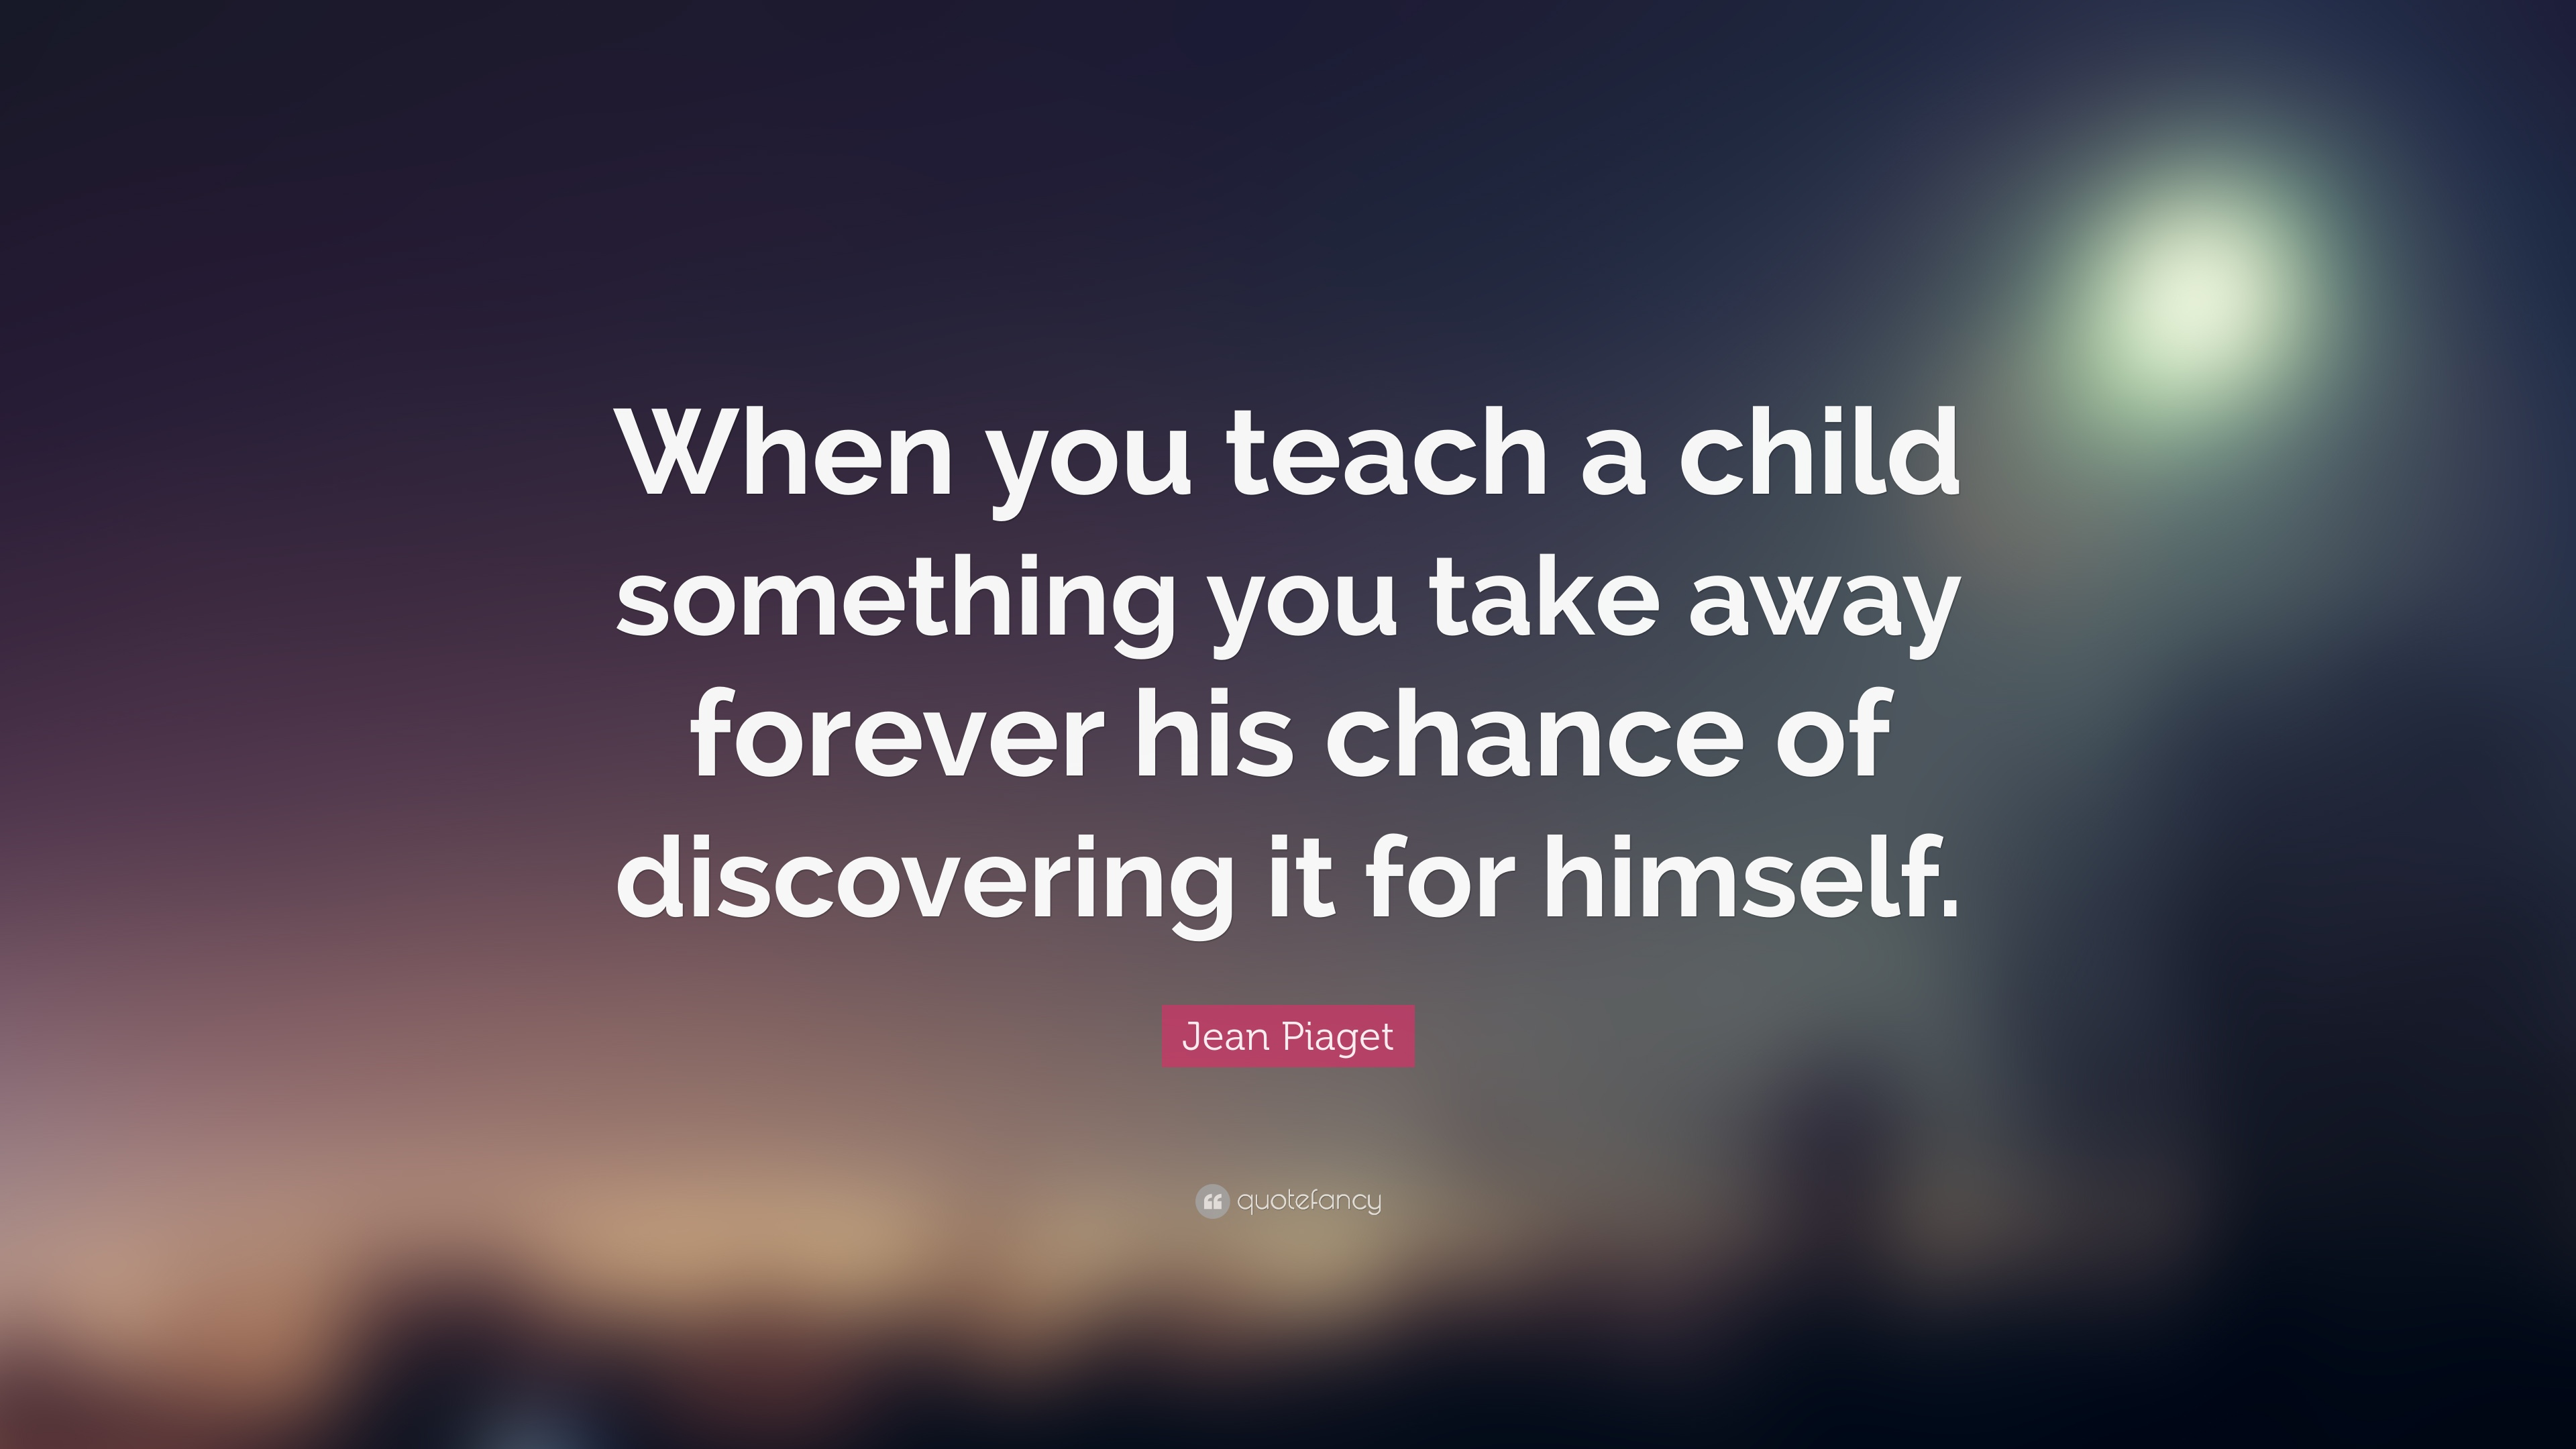 Trust Quotes Wallpaper Jean Piaget Quote When You Teach A Child Something You